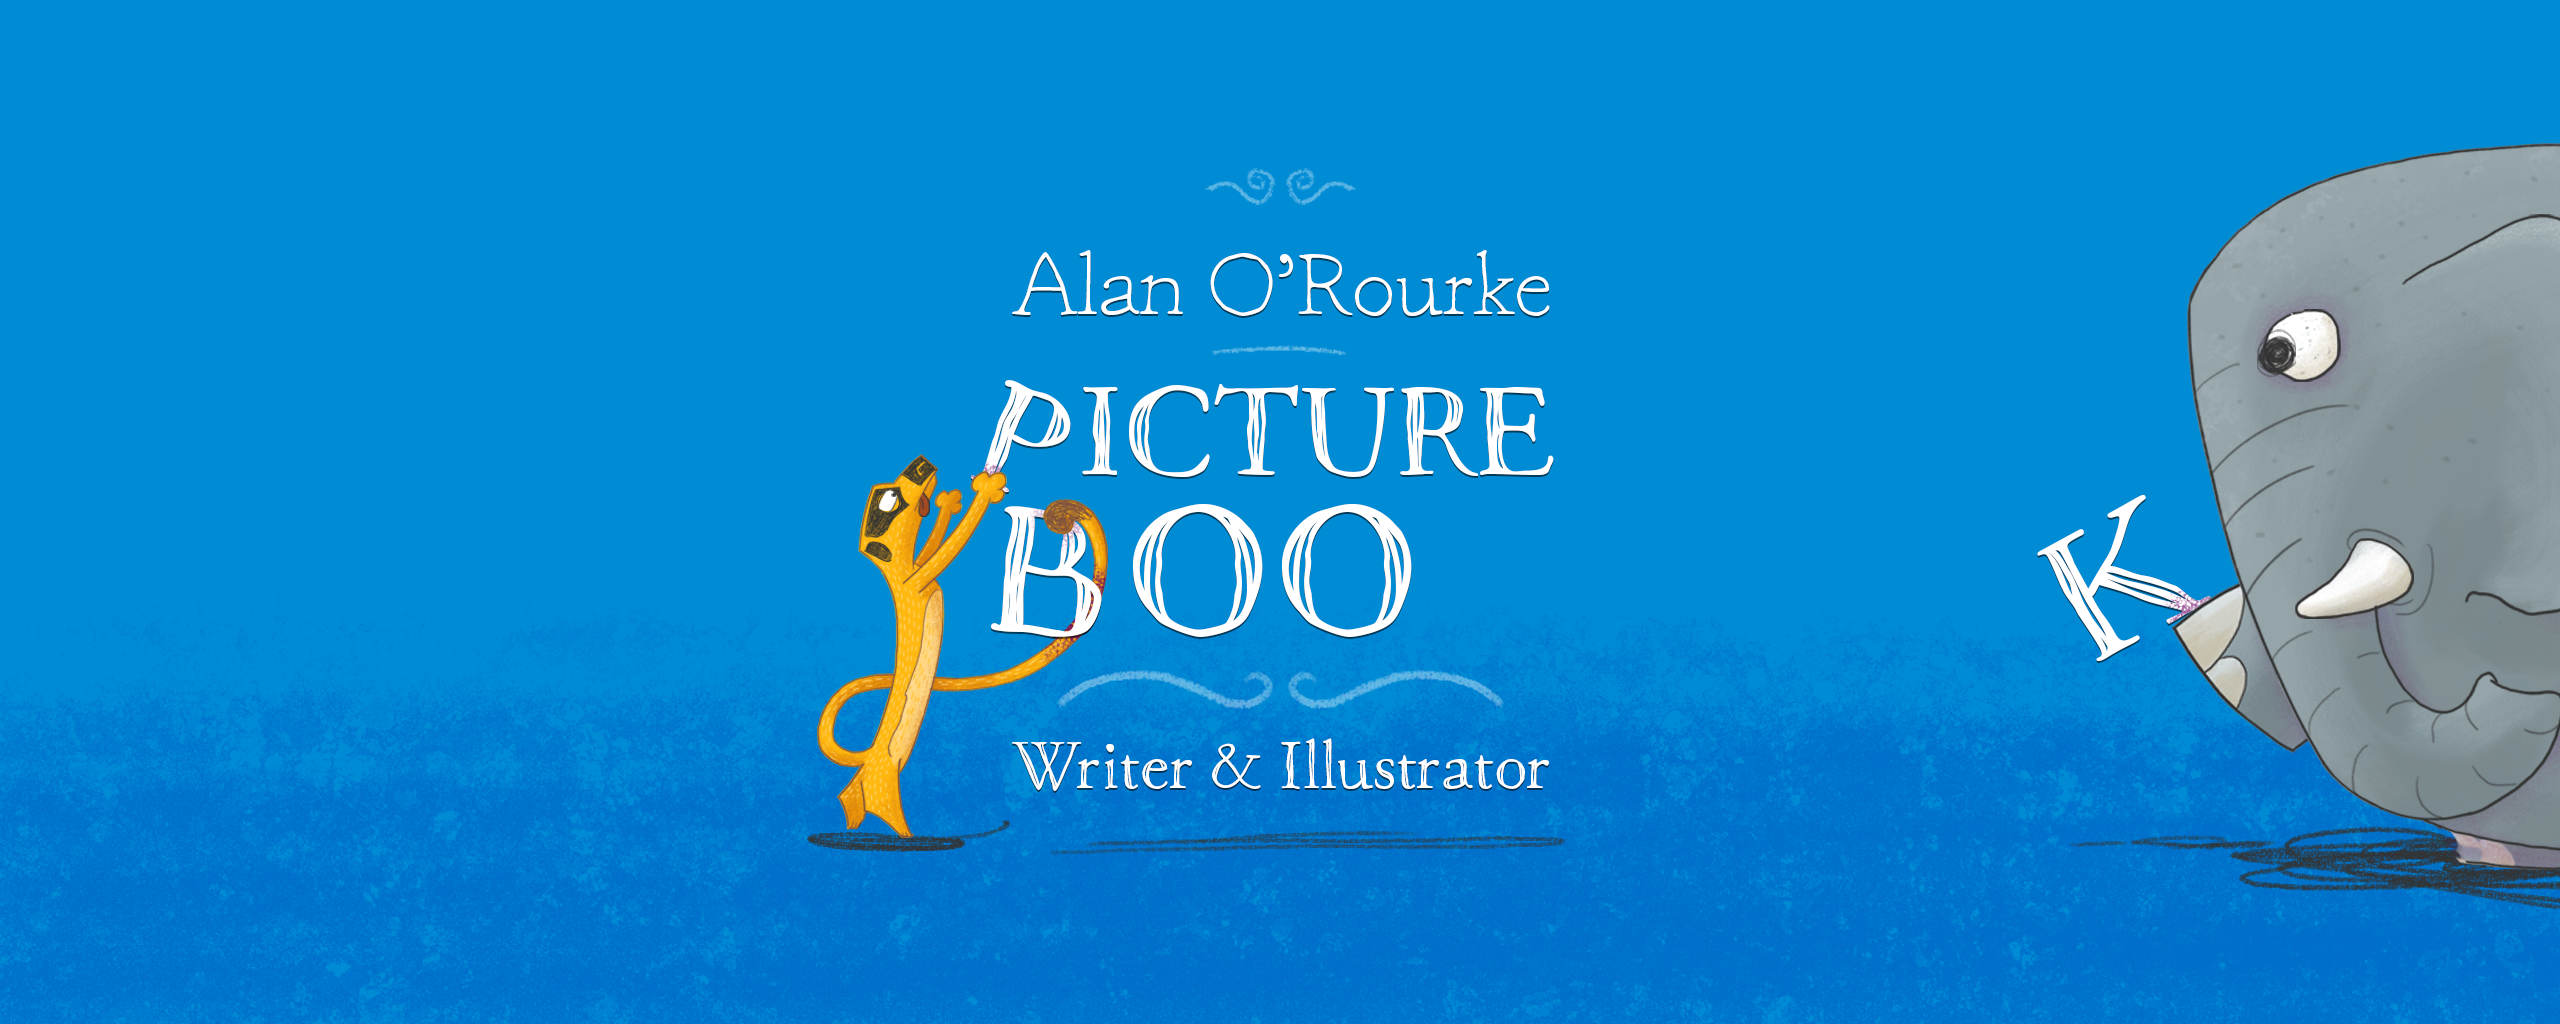 Alan O'Rourke Picturebook Writer and Illustrator